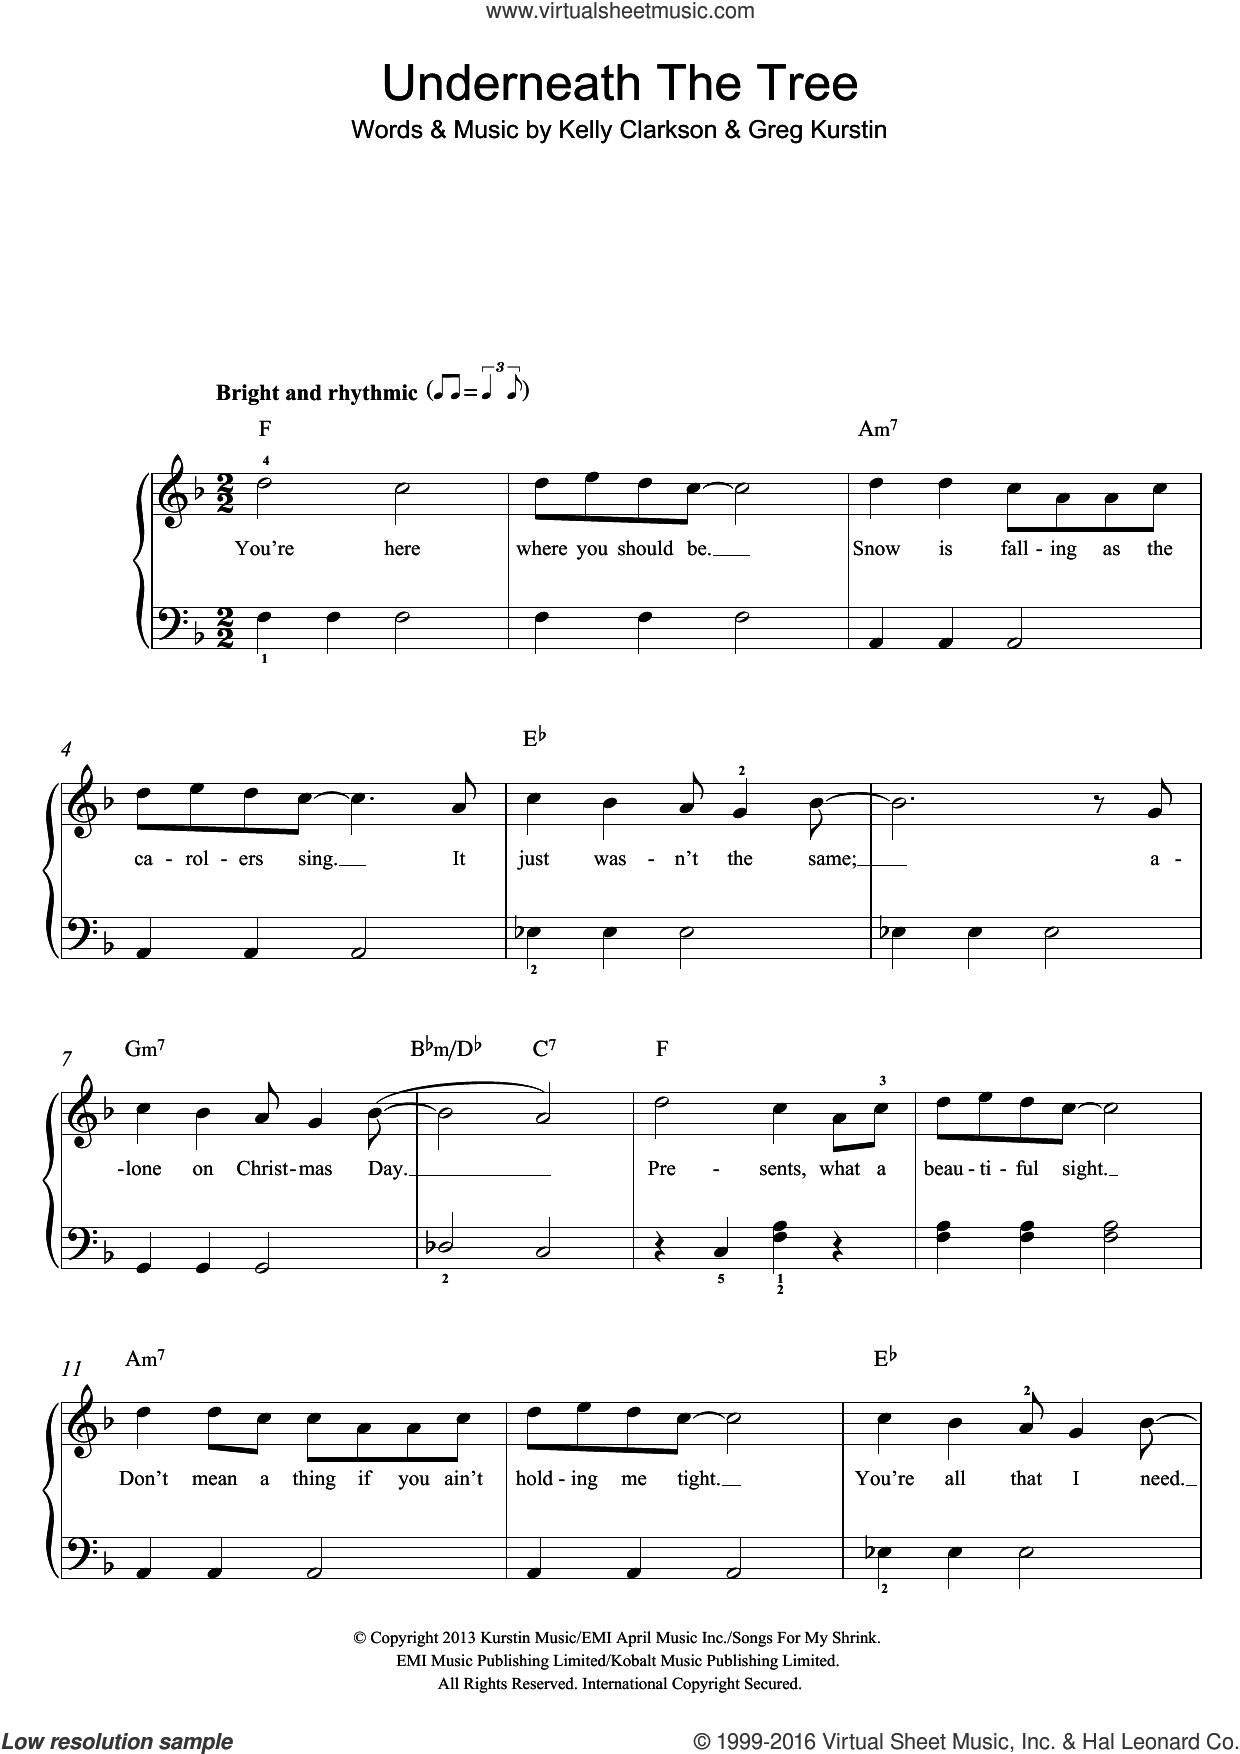 Underneath The Tree sheet music for piano solo by Kelly Clarkson and Greg Kurstin, easy skill level